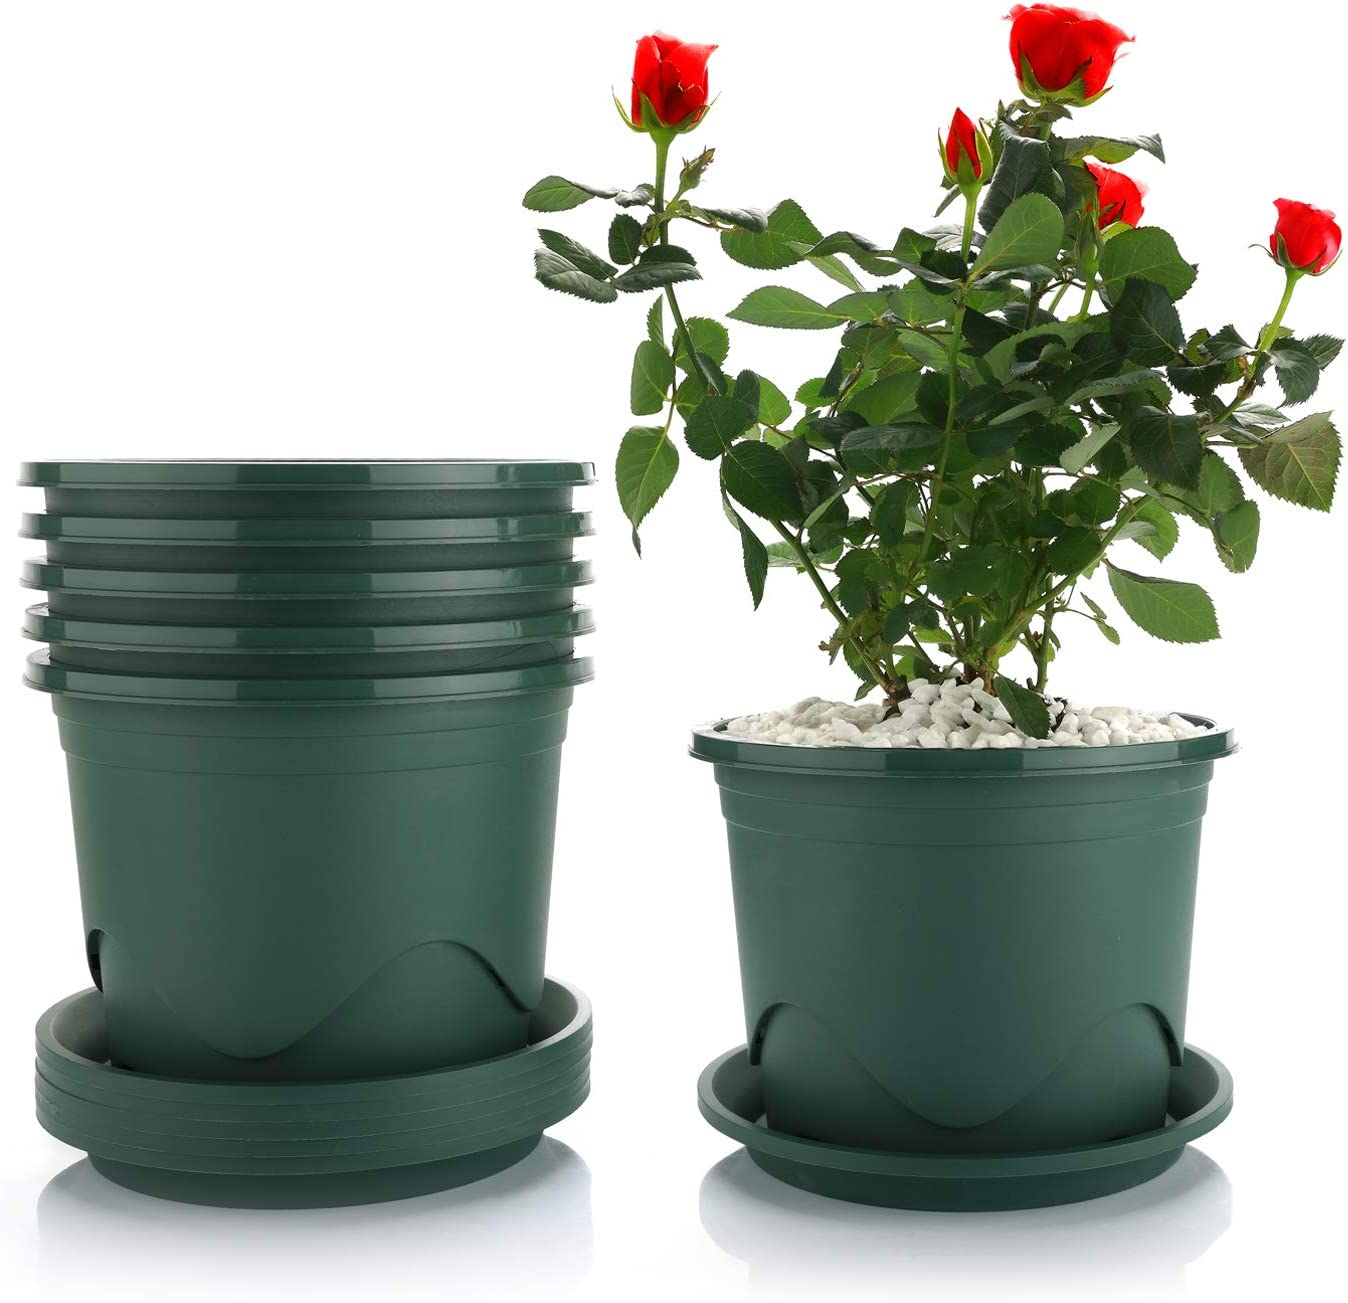 T4U Plastic Planter with Saucer 6.5 Inch Root Control Set of 6, Dark Green Flower Plant Pot Nursery Seedling Planter Modern Container 0.5 Gallon Outdoor Indoor Use for All House Plants Herbs Cactus